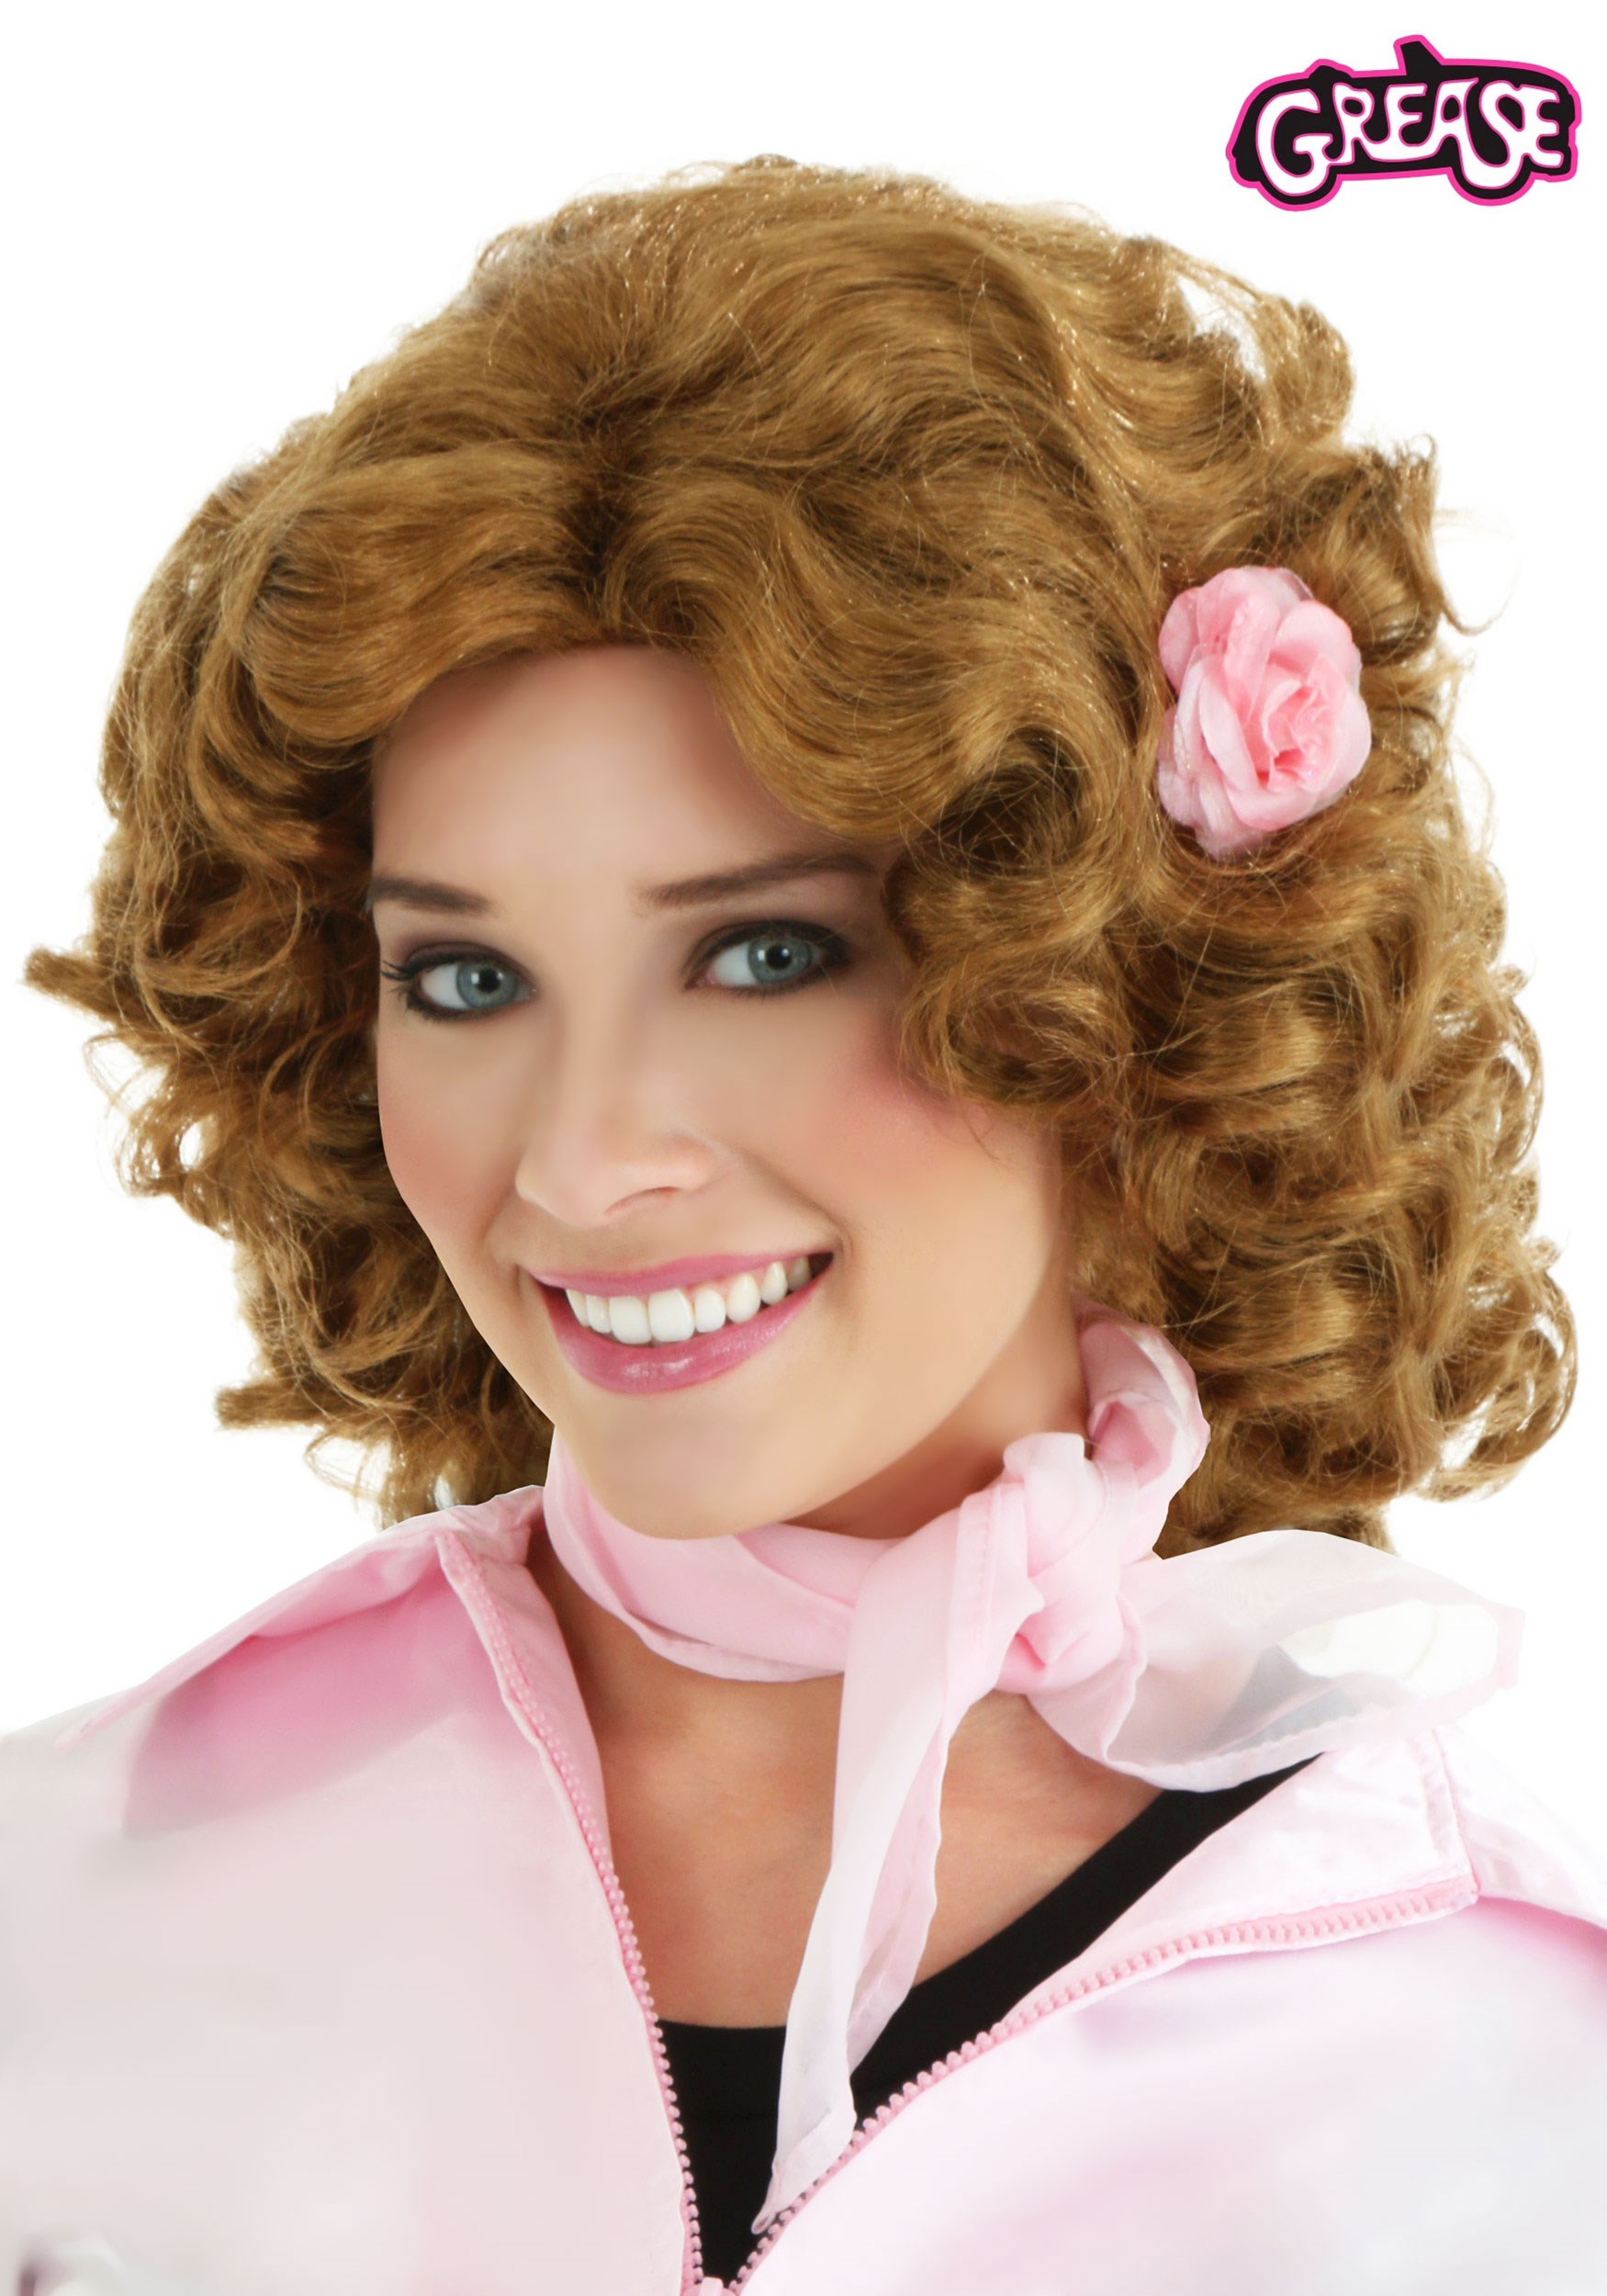 Marty Wig From Grease